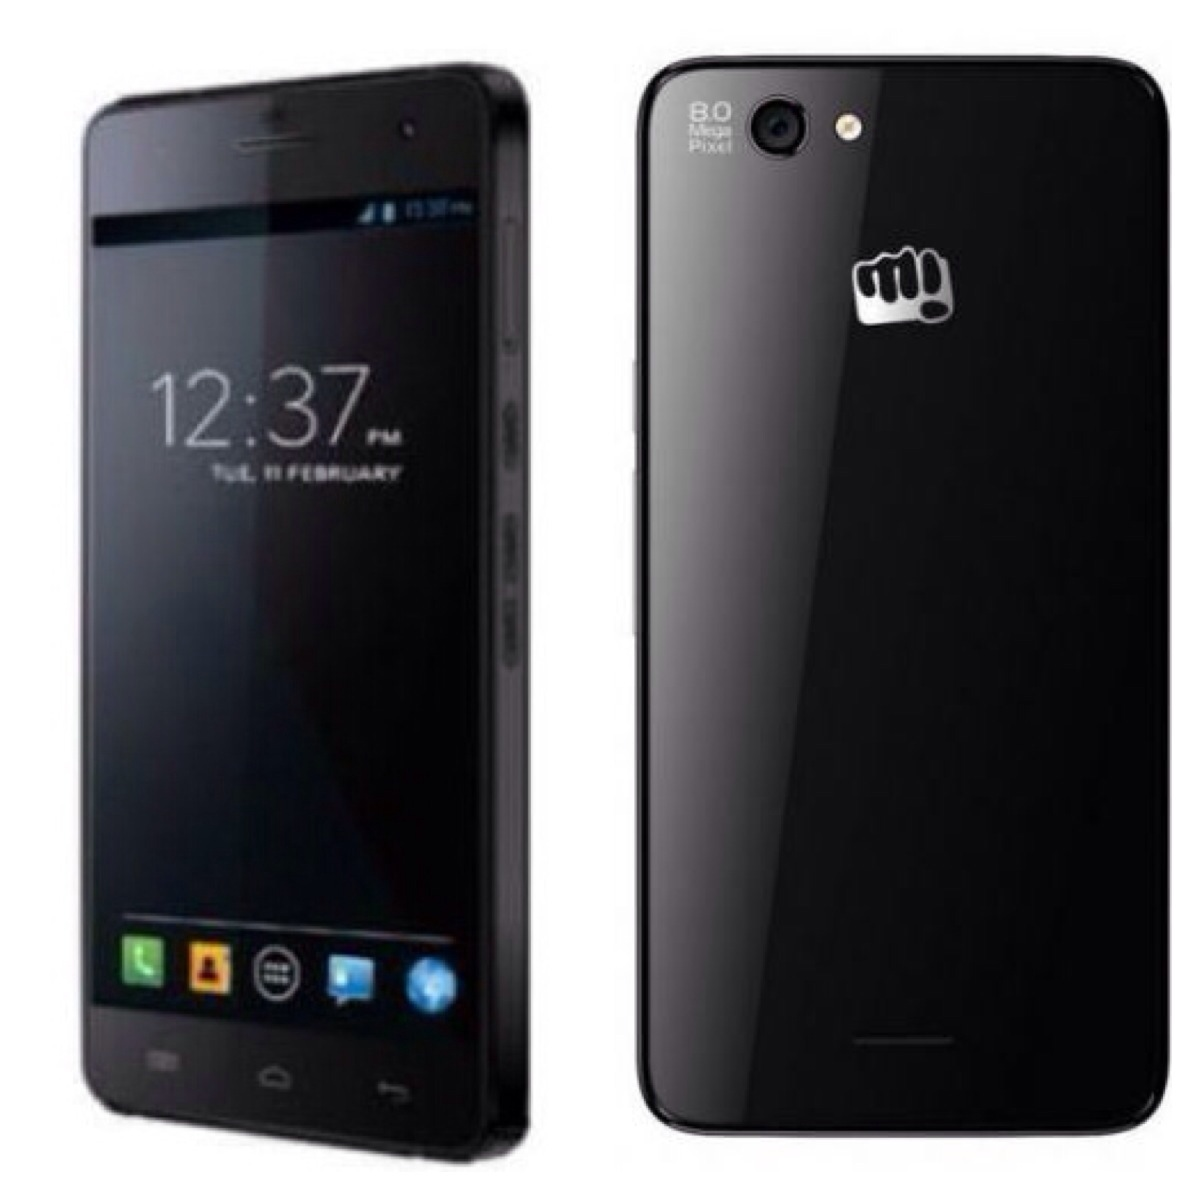 Micromax Canvas Knight Cameo A290 available online for Rs. 12,350